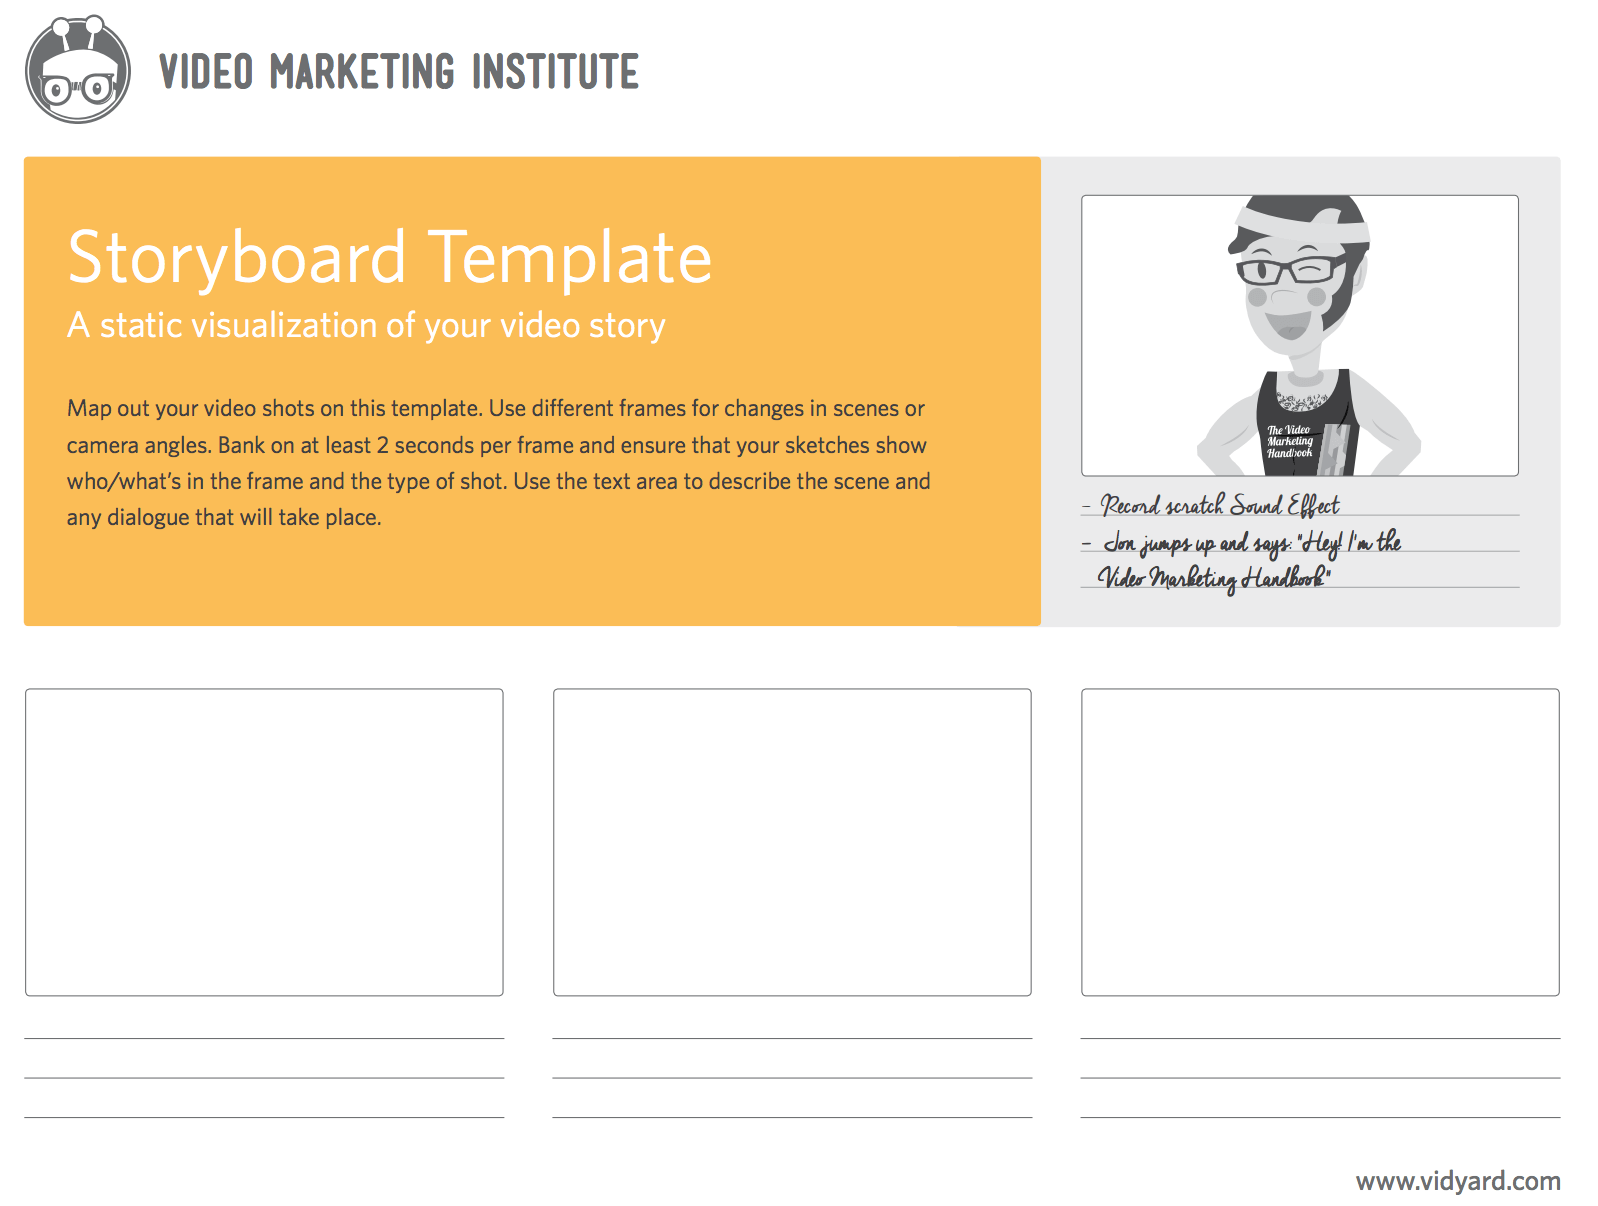 How to Storyboard a Marketing Video (When You're Not an Artist)